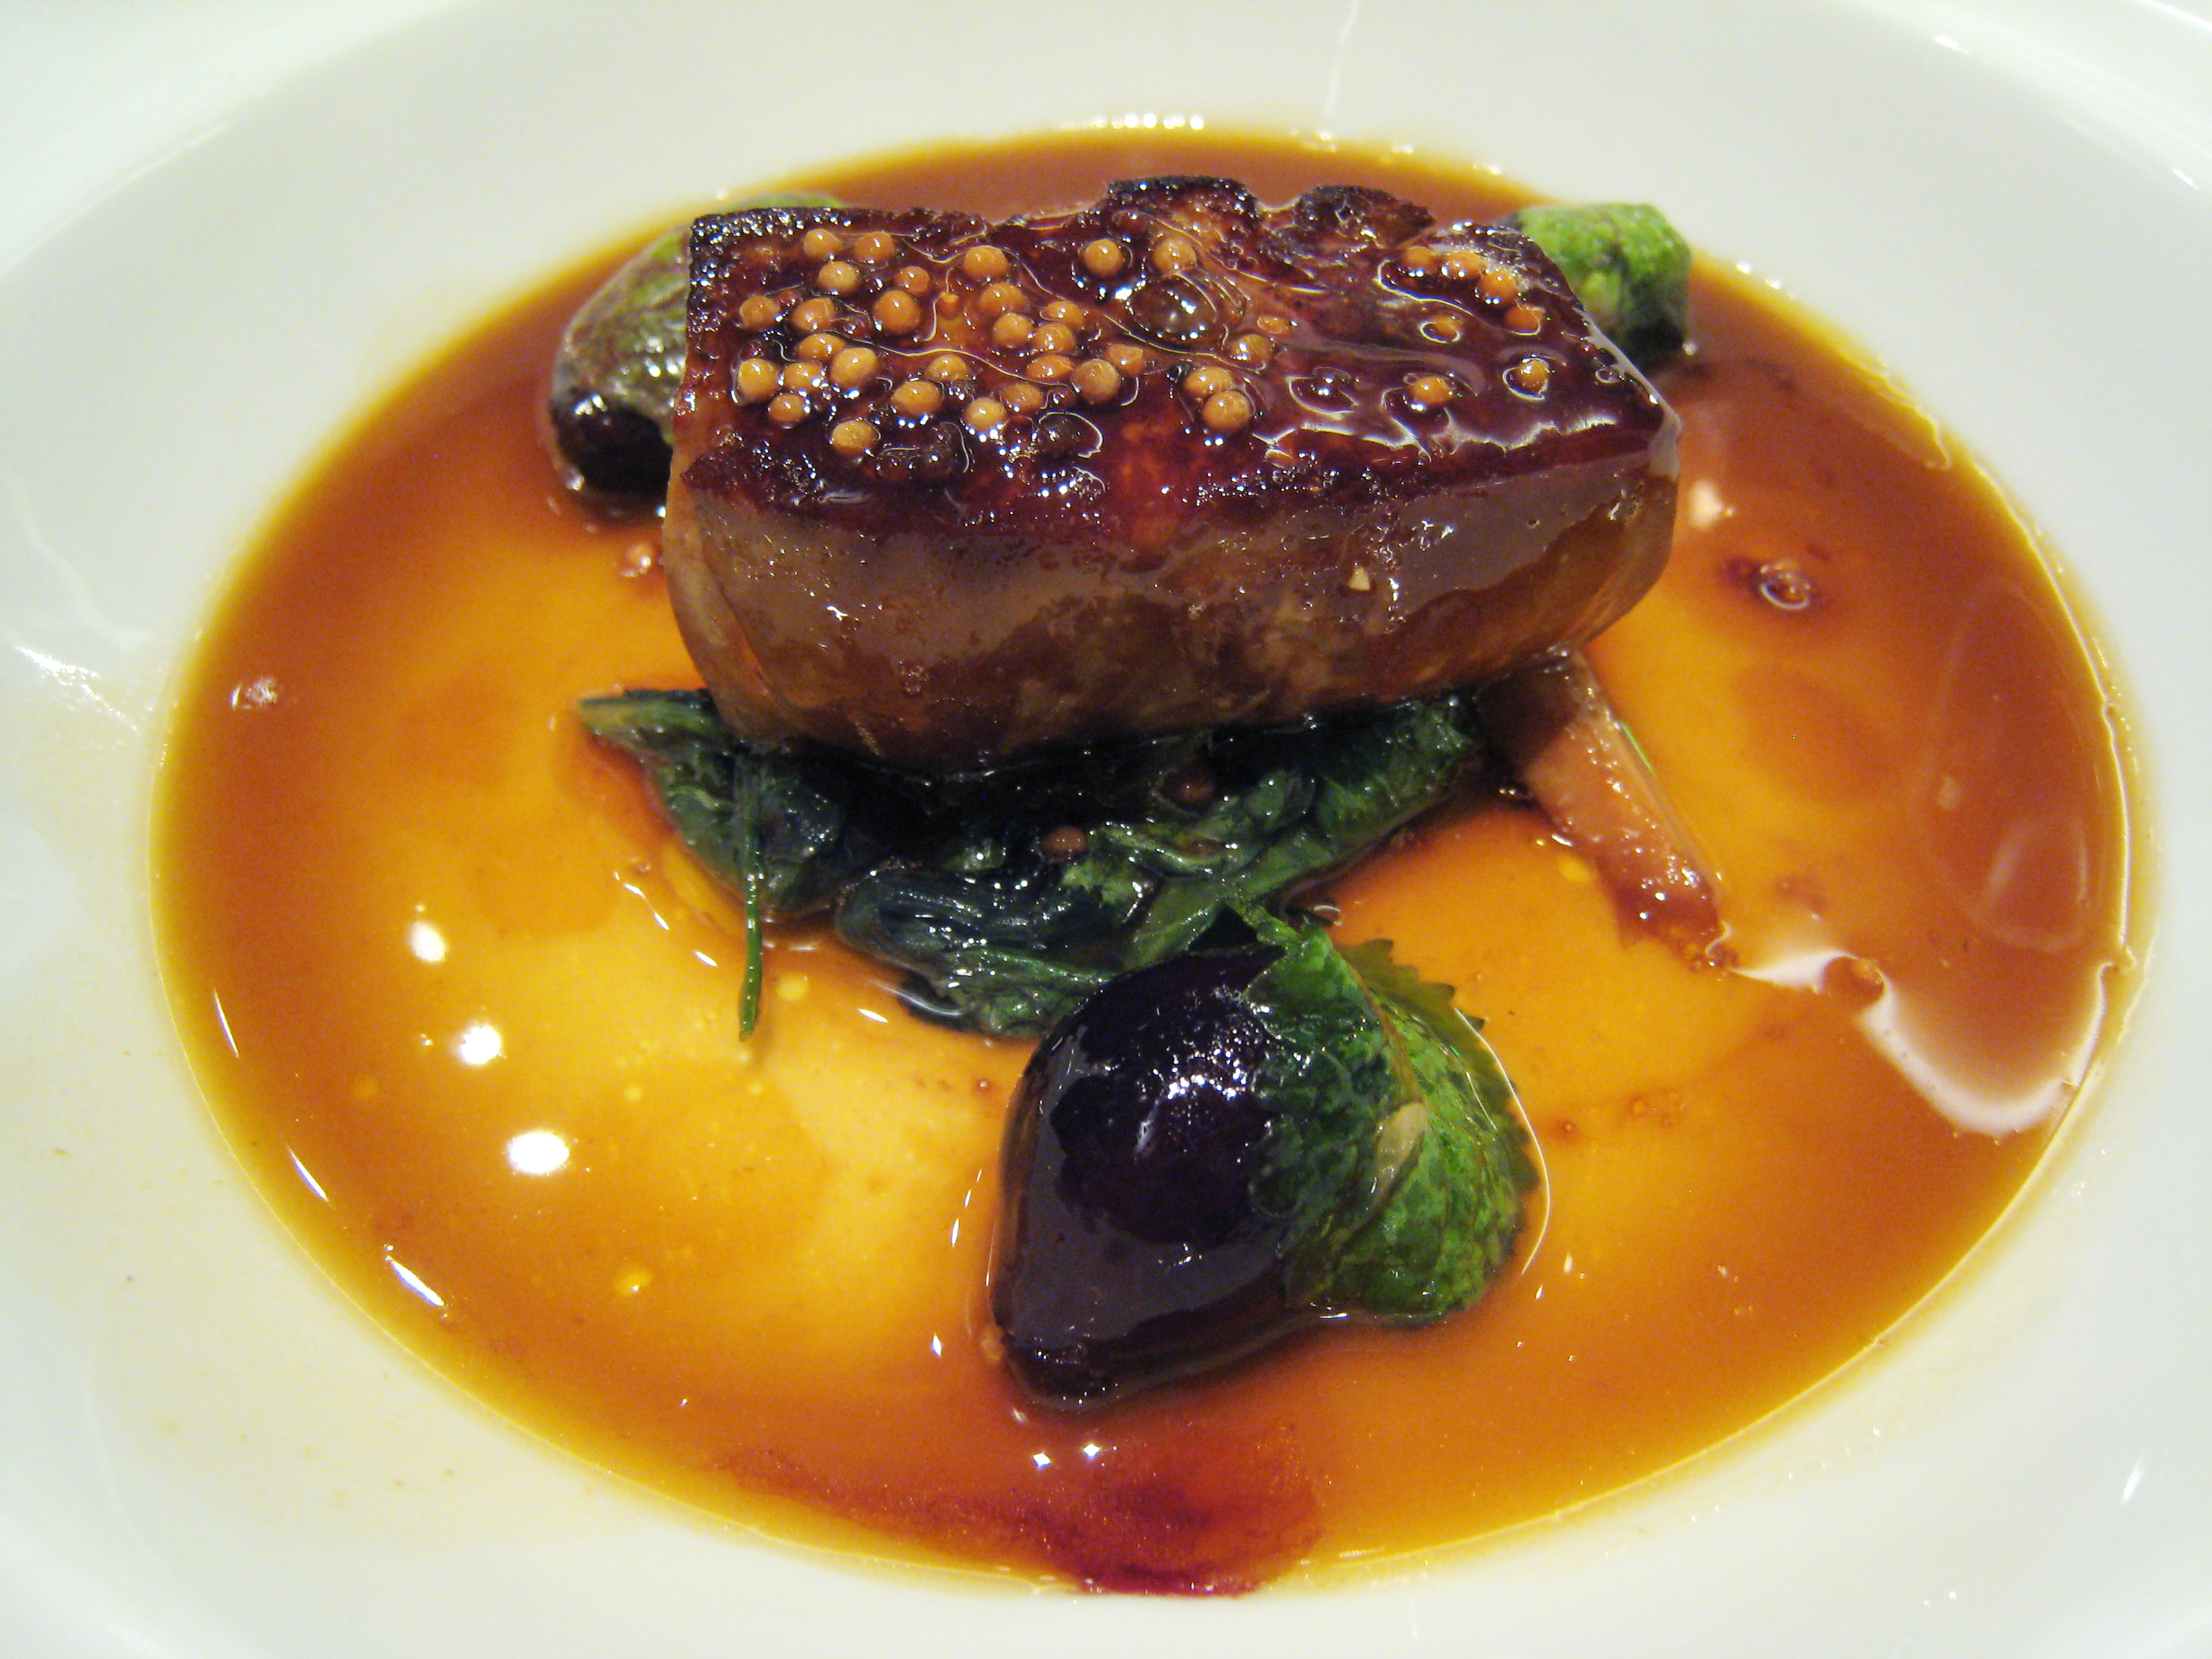 ... sauteed seared foie gras with sautéed duck foie gras the foie gras